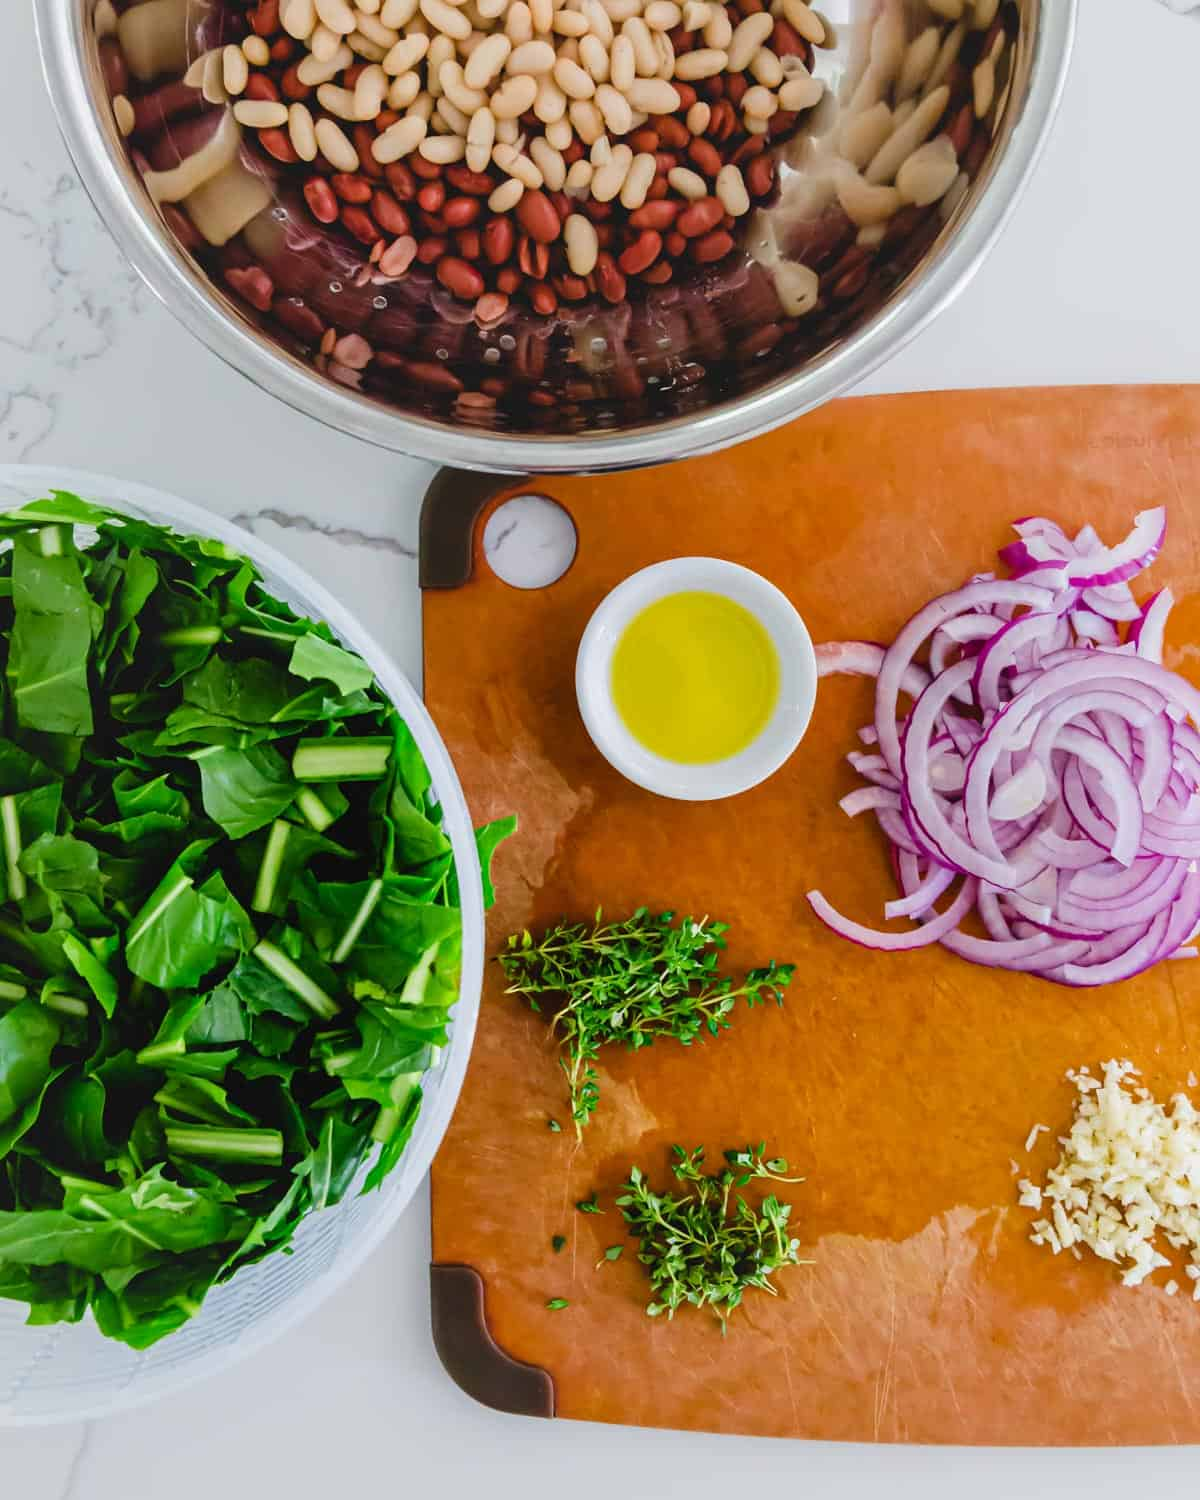 prepped ingredients for a vegetarian dandelion greens and beans skillet recipe